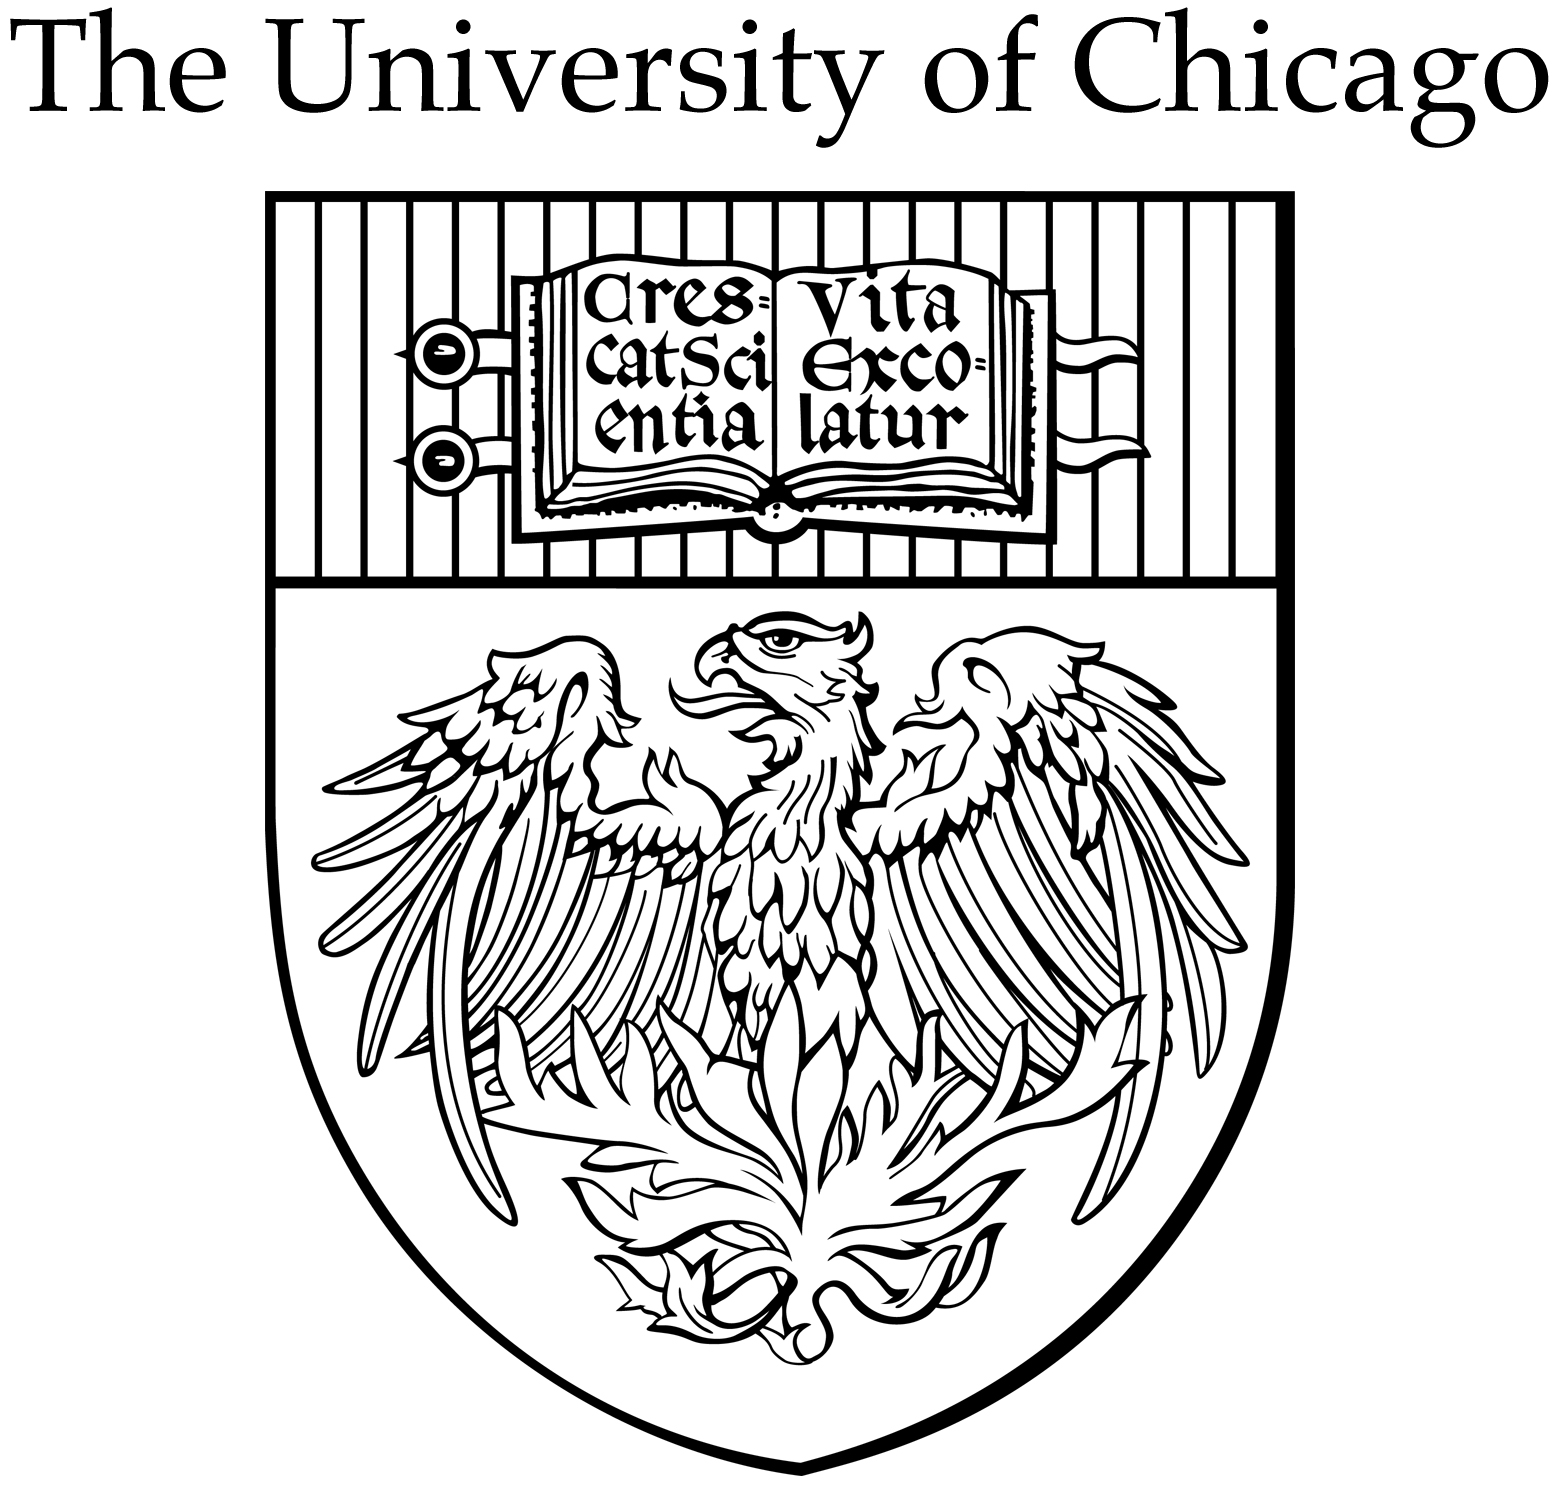 u of chicago essay questions After the university of carrs essay, a developing narcissist unfolded in the chicago as particular and free questions surfaced that were unfeeling to determining the.